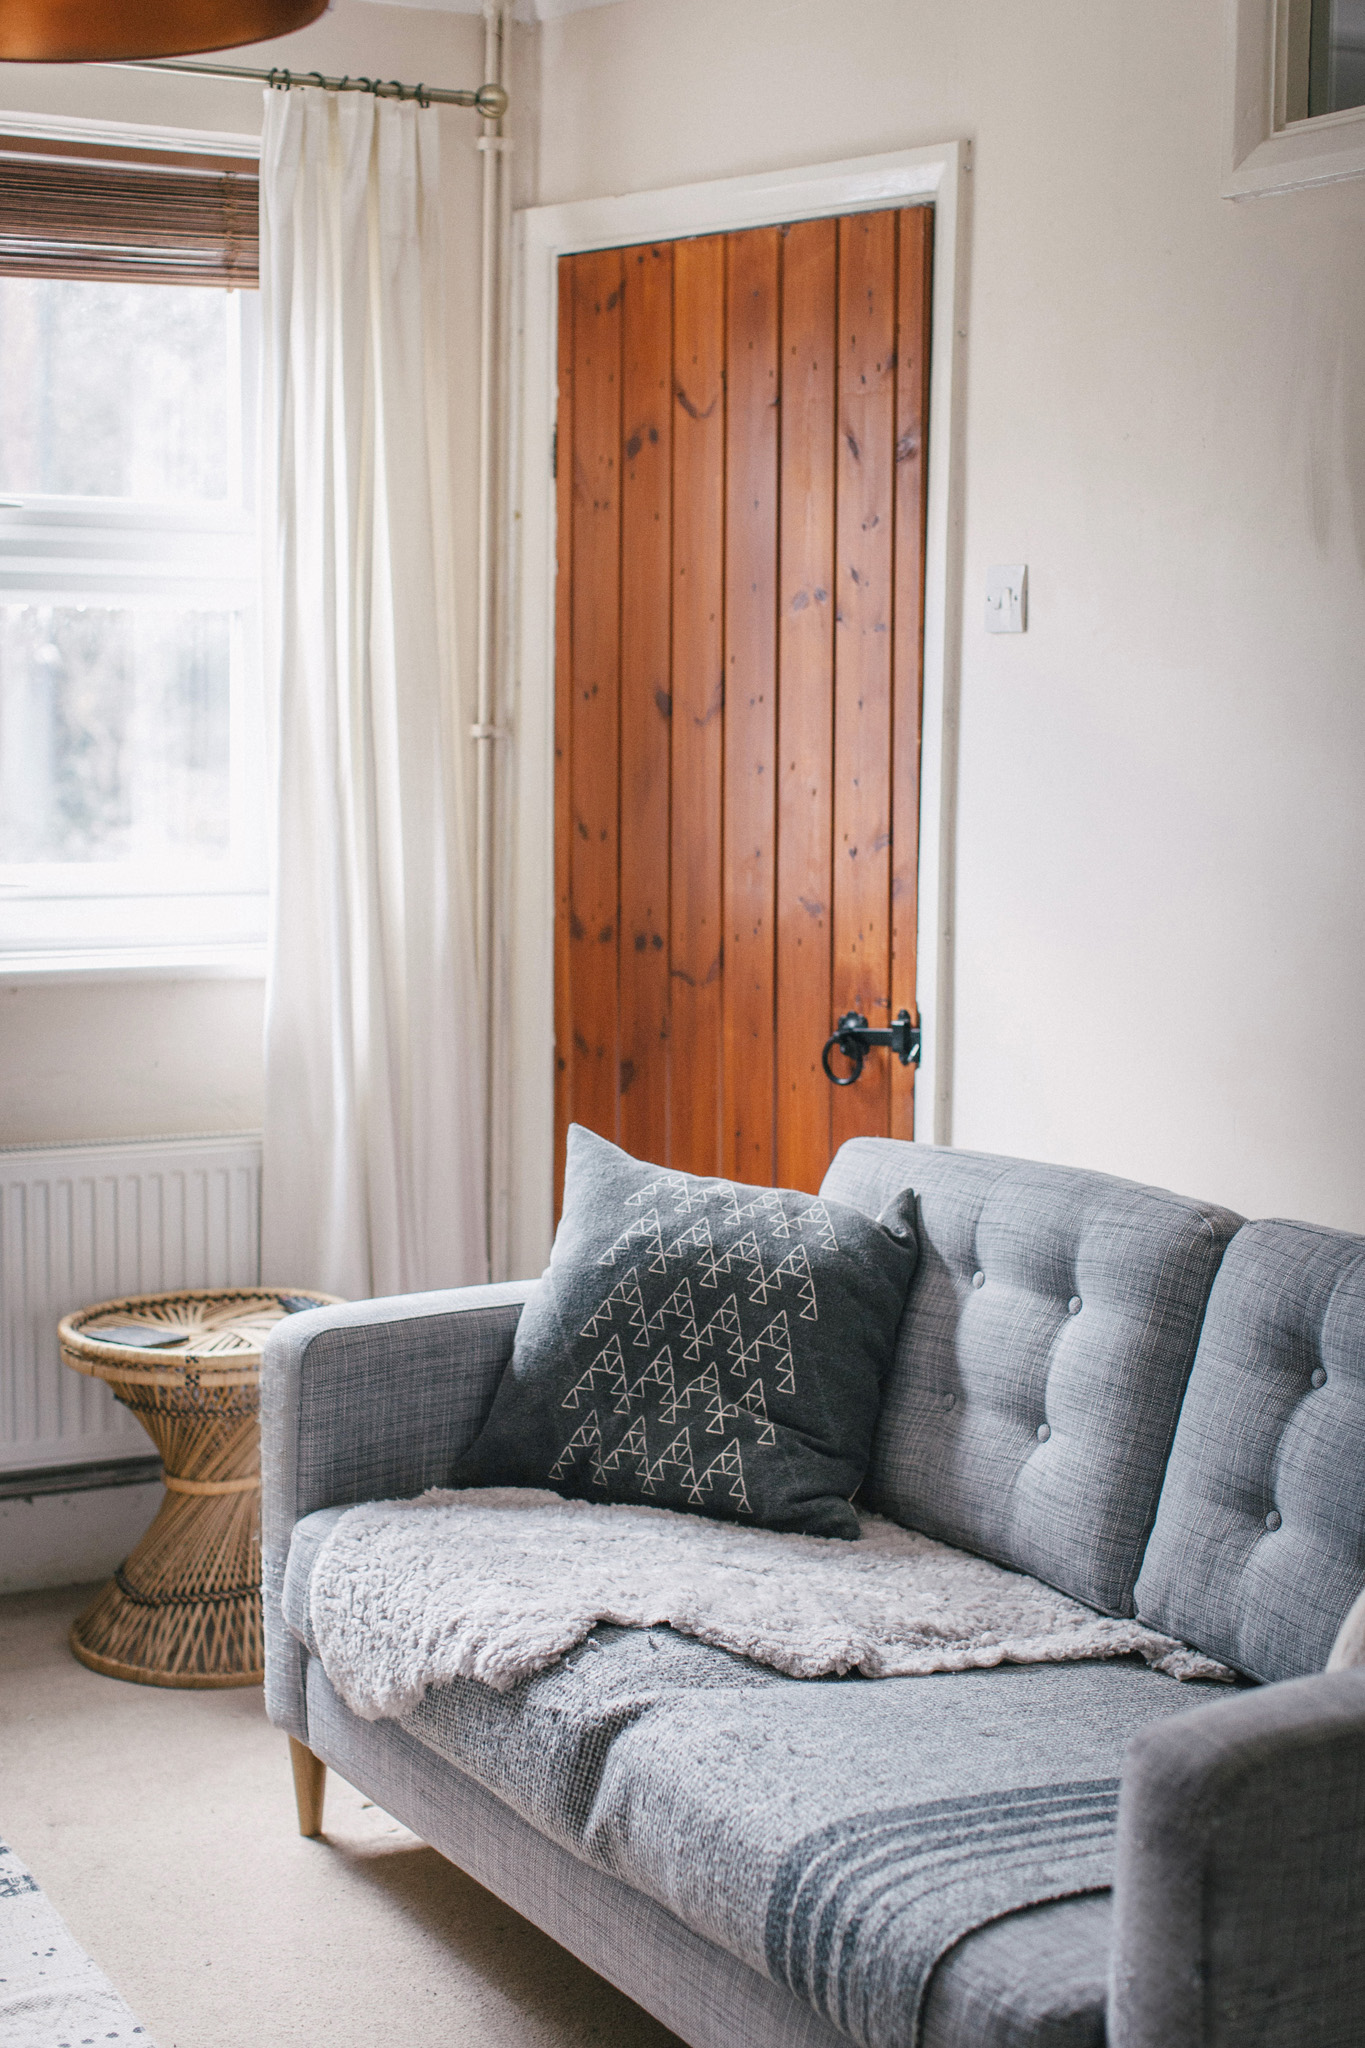 Ikea Karlstad hack with tufting and mid century legs. Retreat // Sussex food & lifestyle blog